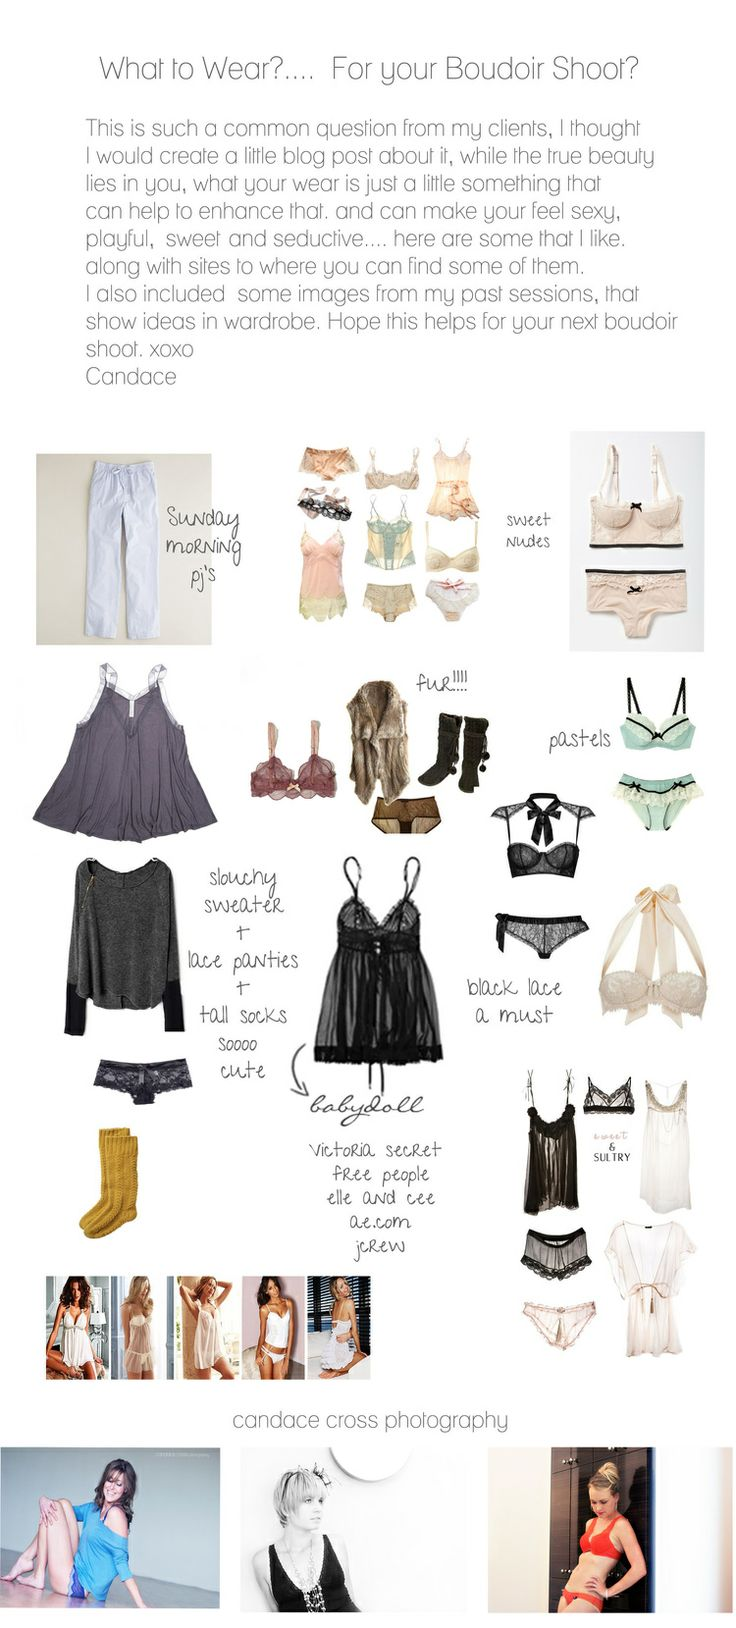 www.candacecrossphotography.com,what to wear, lingerie, boudoir, boudoir attire, boudoir photography, boudoir inspiration,